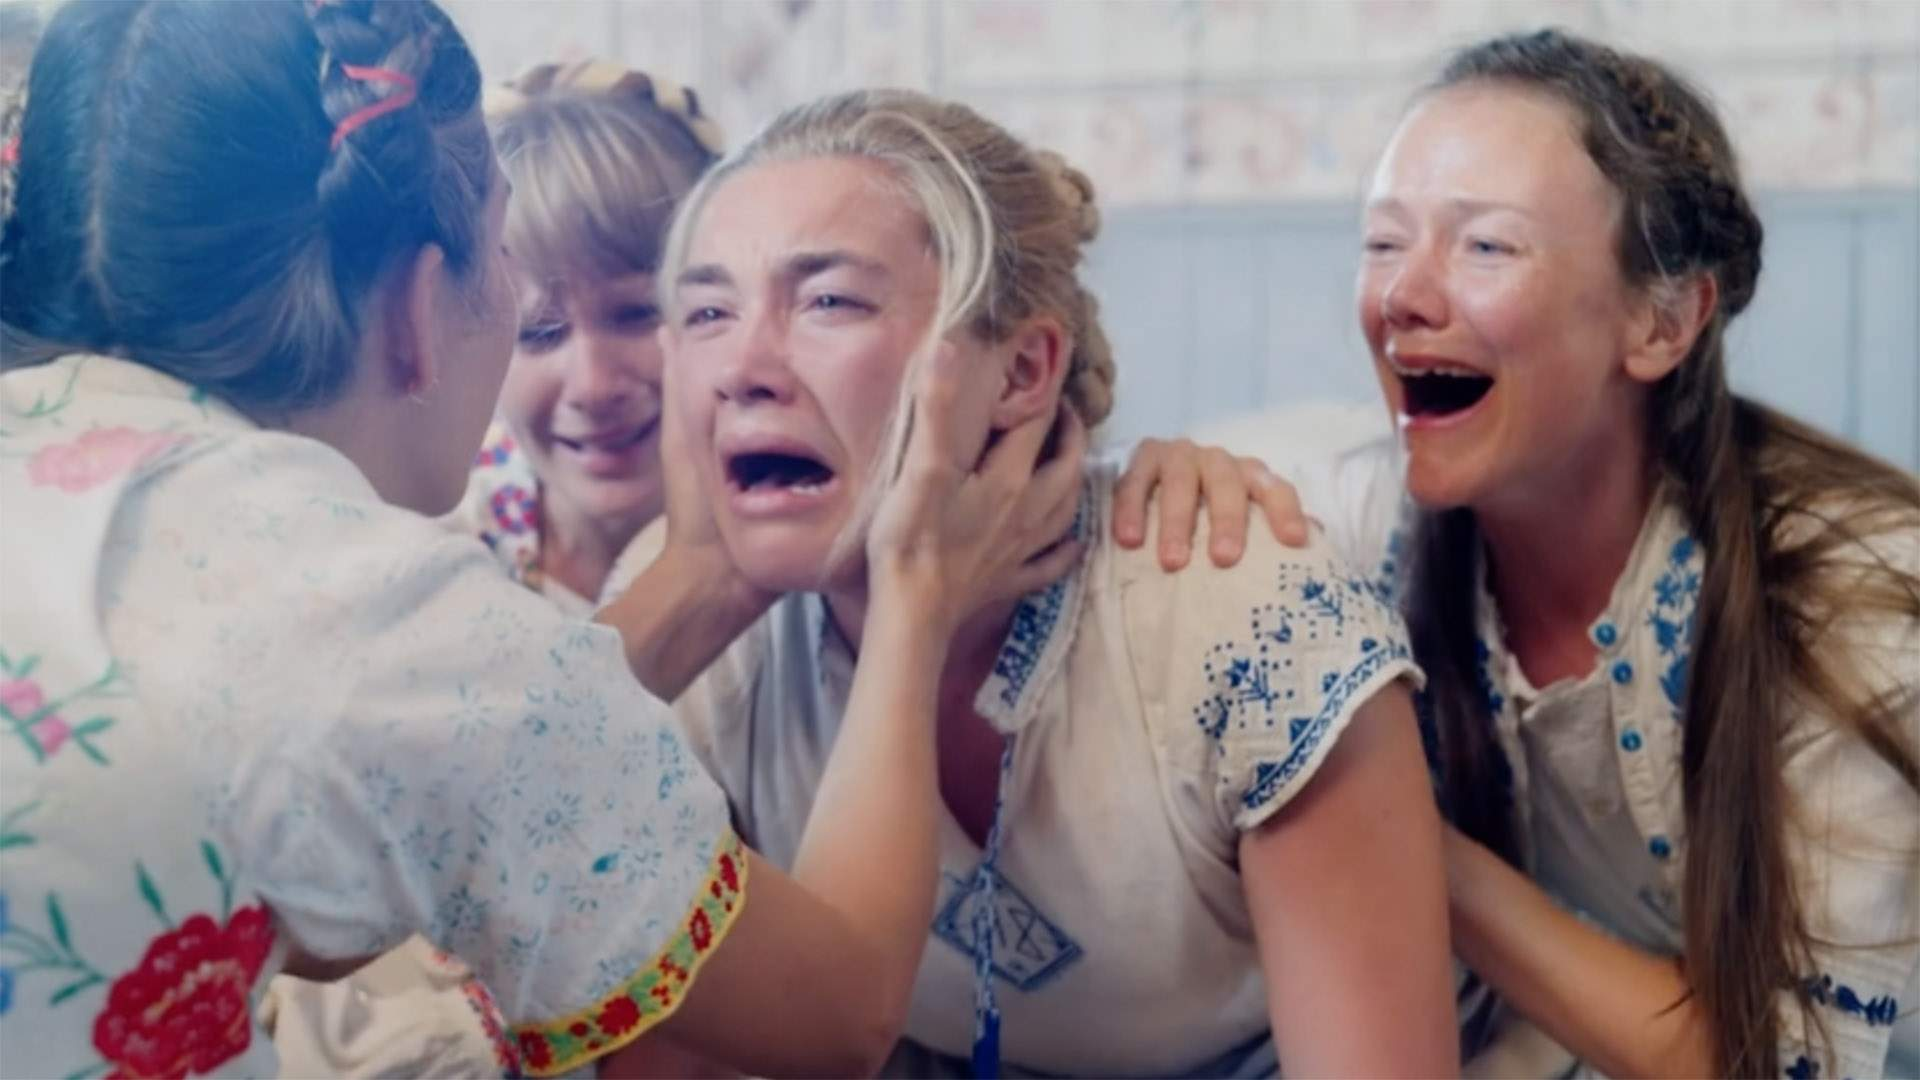 Check Out the Latest Trailer for 'Midsommar', the Unsettling New Horror Movie From the Director of 'Hereditary'